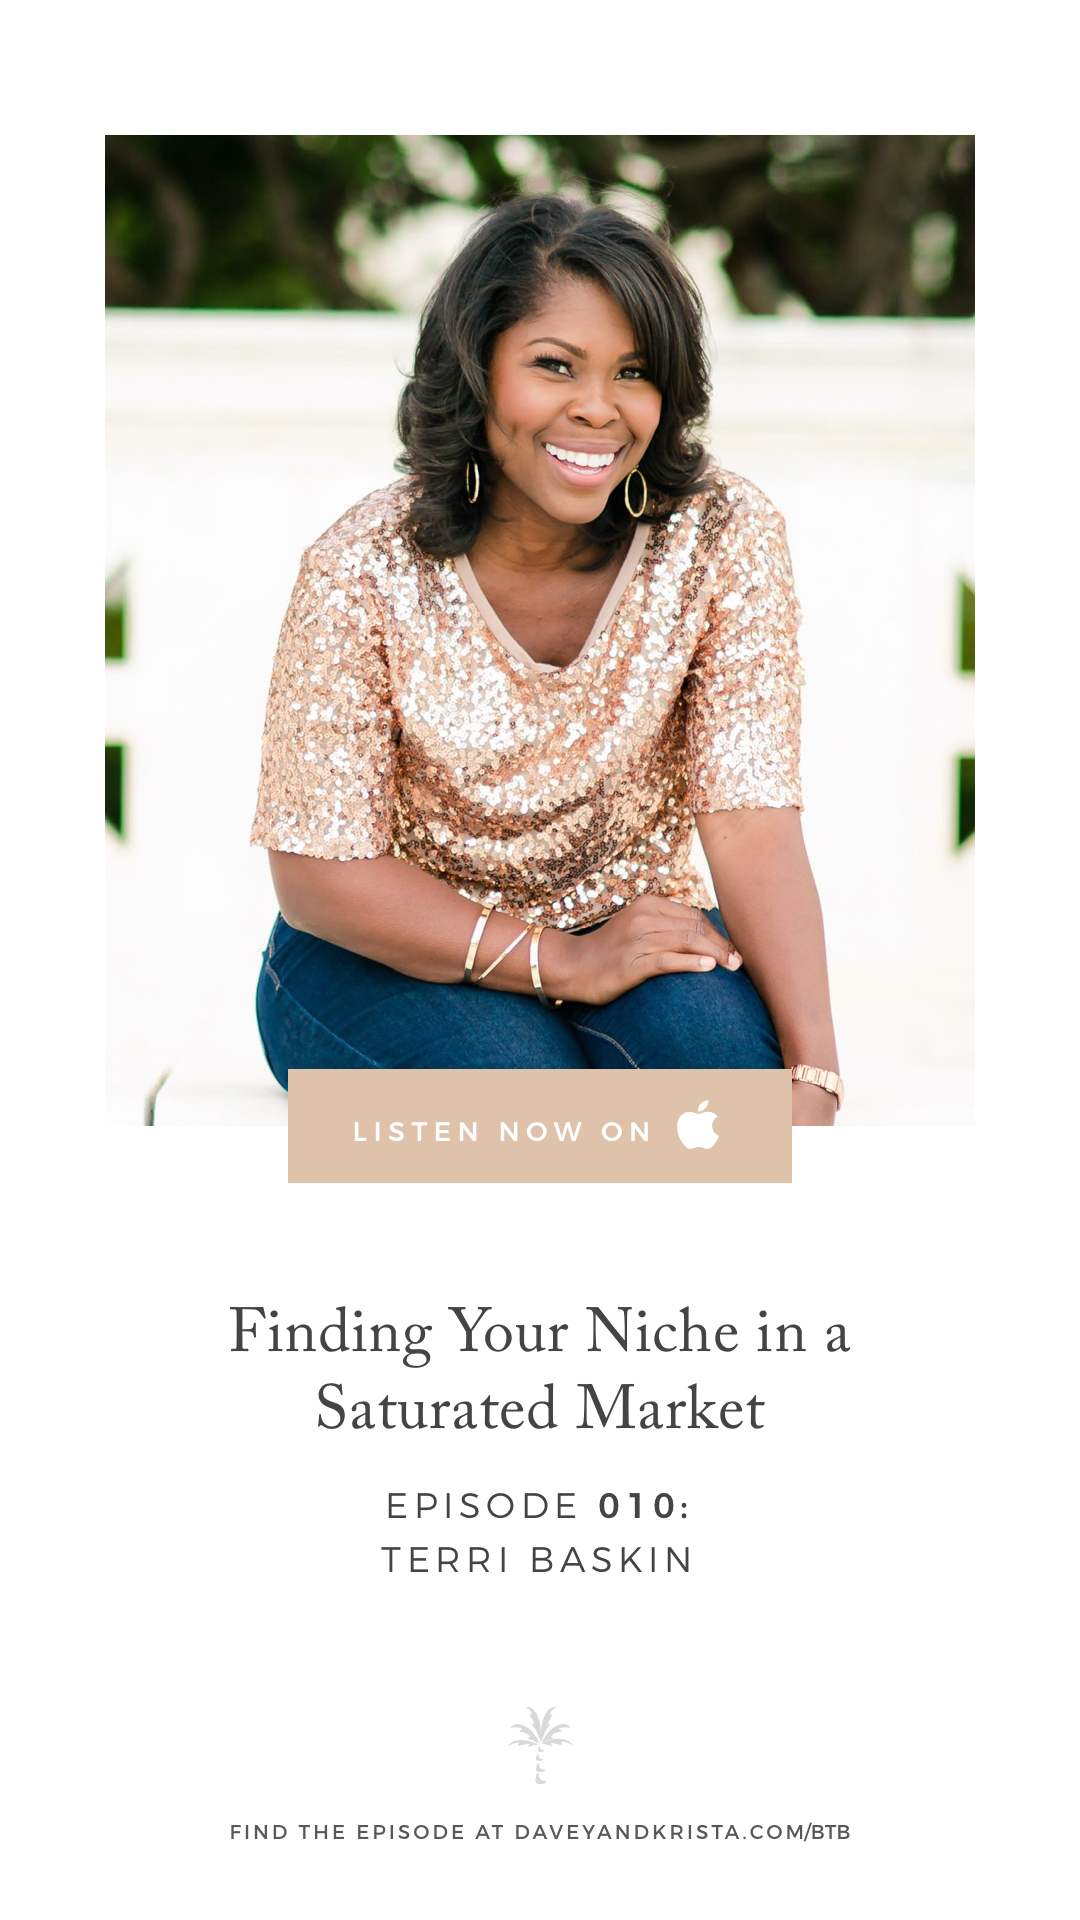 Wedding Photographer Terri Baskin chats about Finding Your Niche in a Saturated Market on the Brands that Book Podcast | Davey & Krista